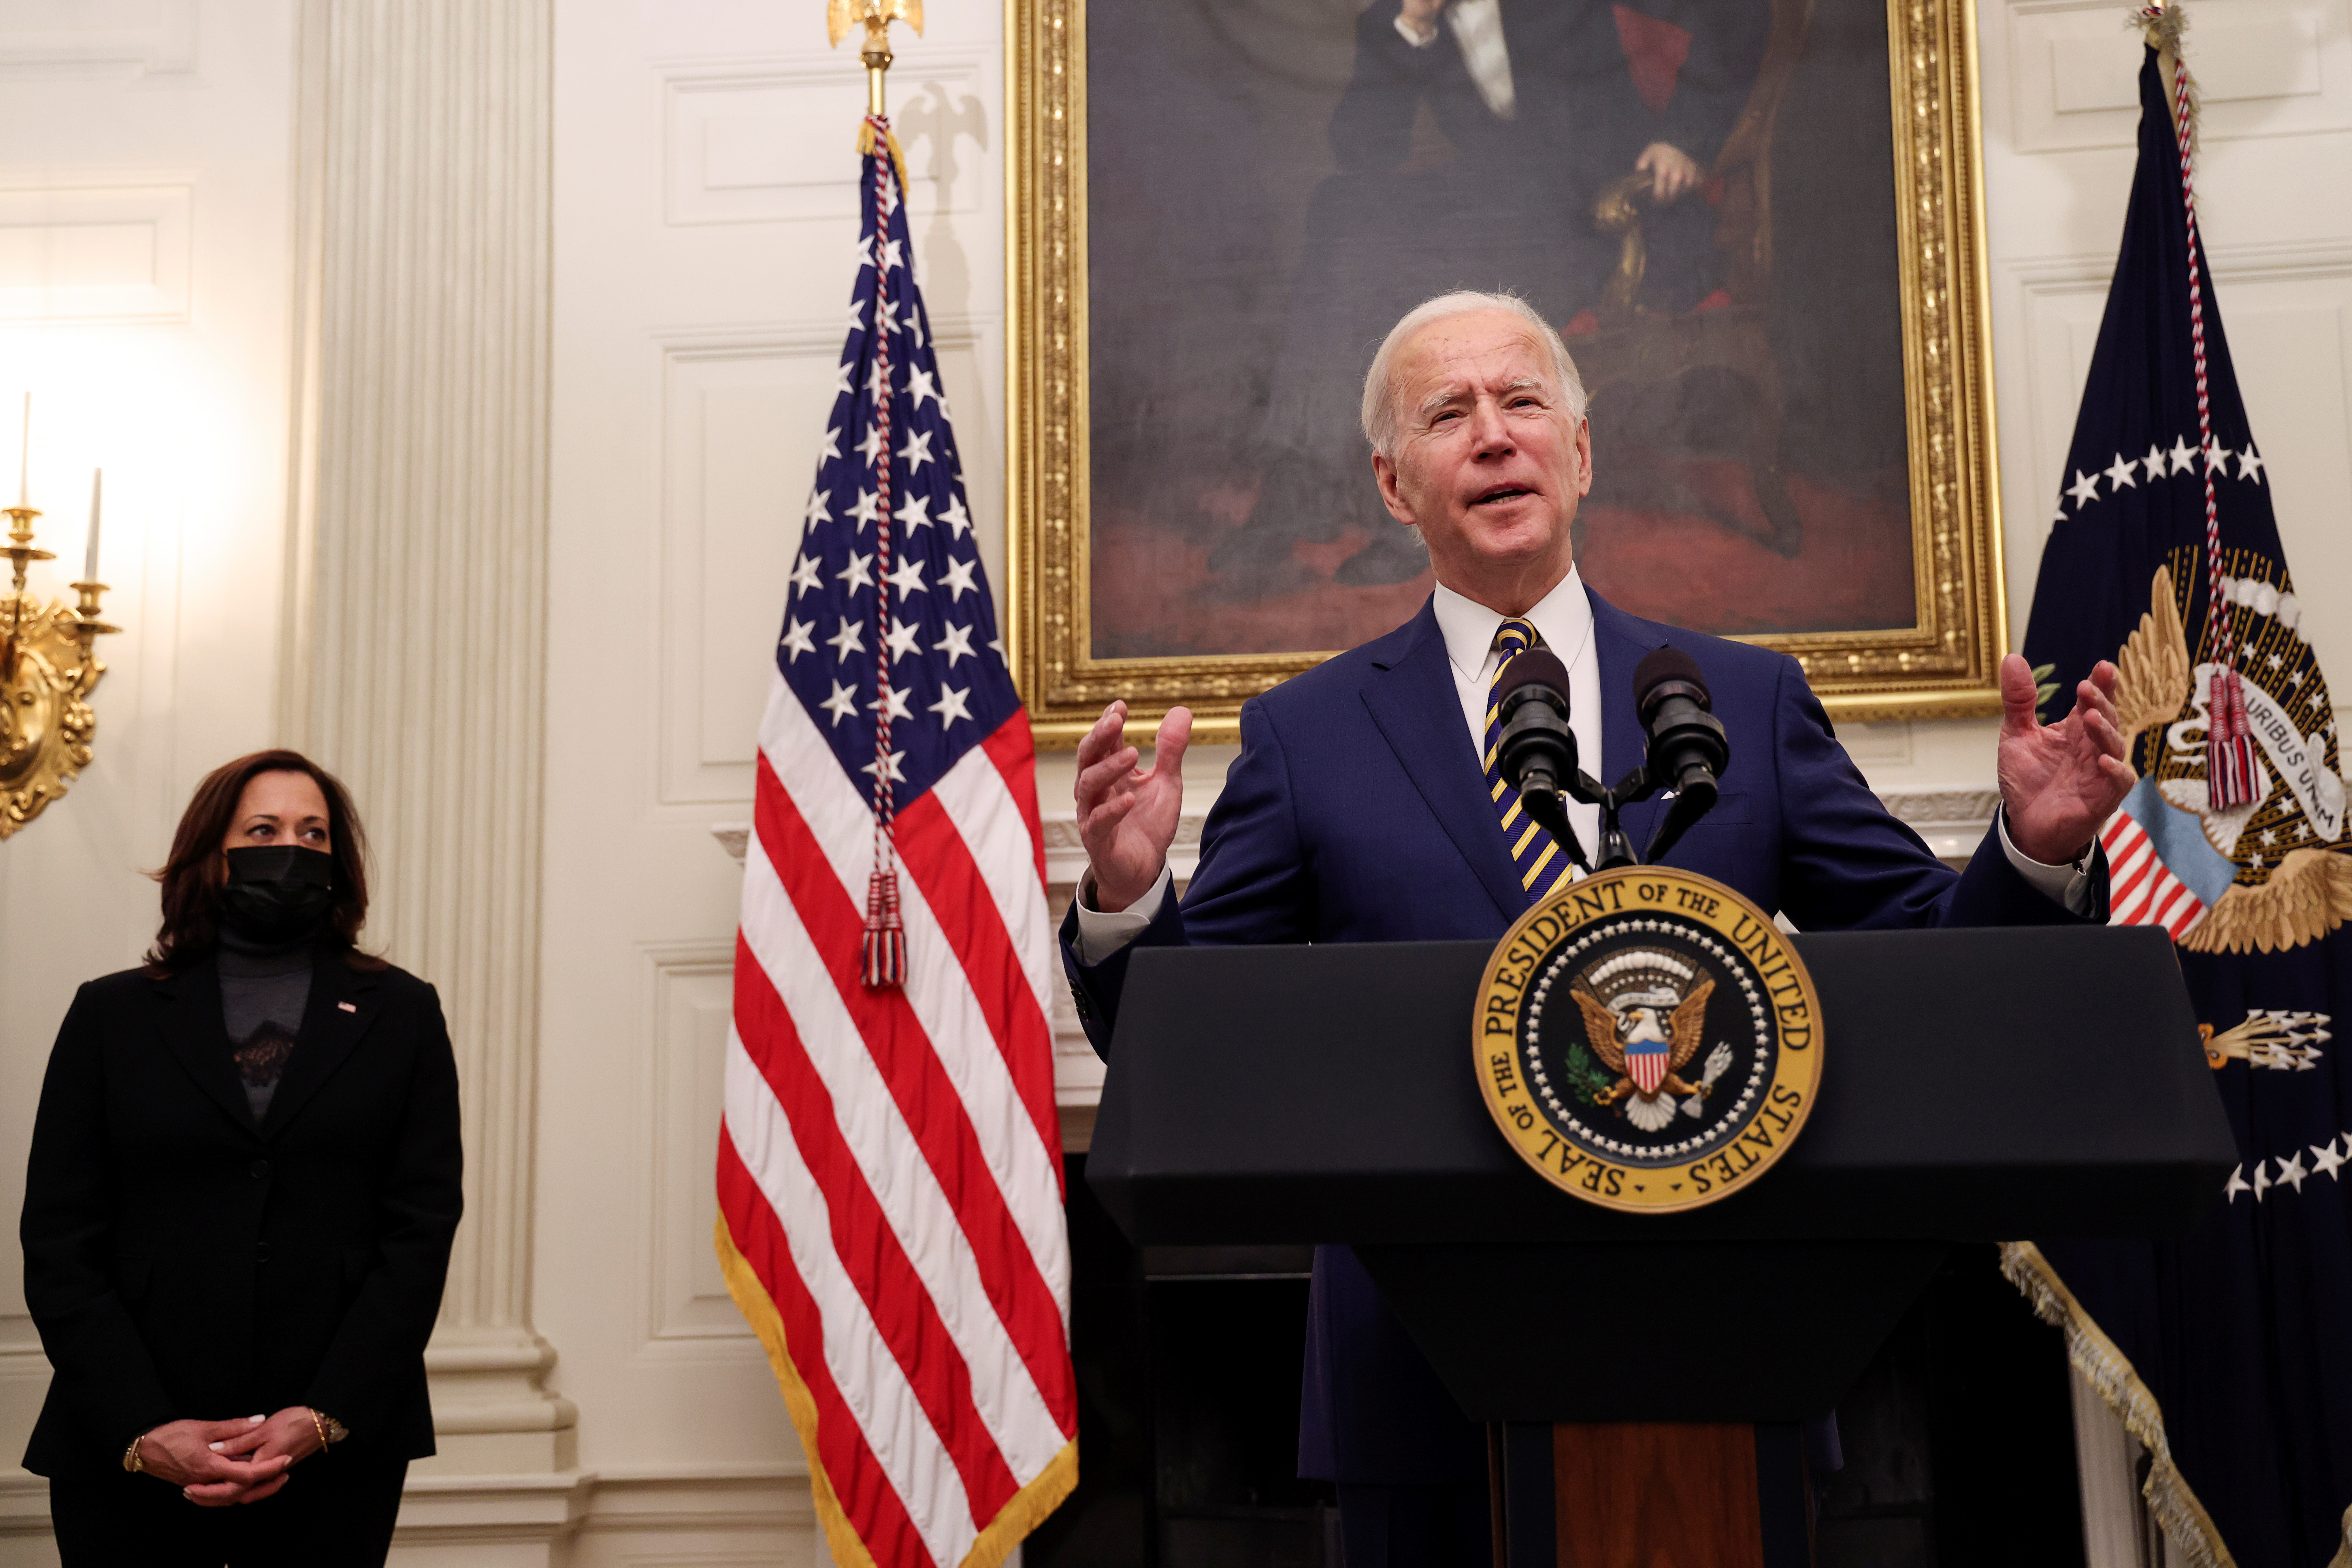 U.S. President Joe Biden speaks about his administration's plans to respond to the economic crisis as Vice President Kamala Harris listens during a coronavirus disease (COVID-19) response event in the State Dining Room at the White House in Washington, U.S., January 22, 2021. REUTERS/Jonathan Ernst